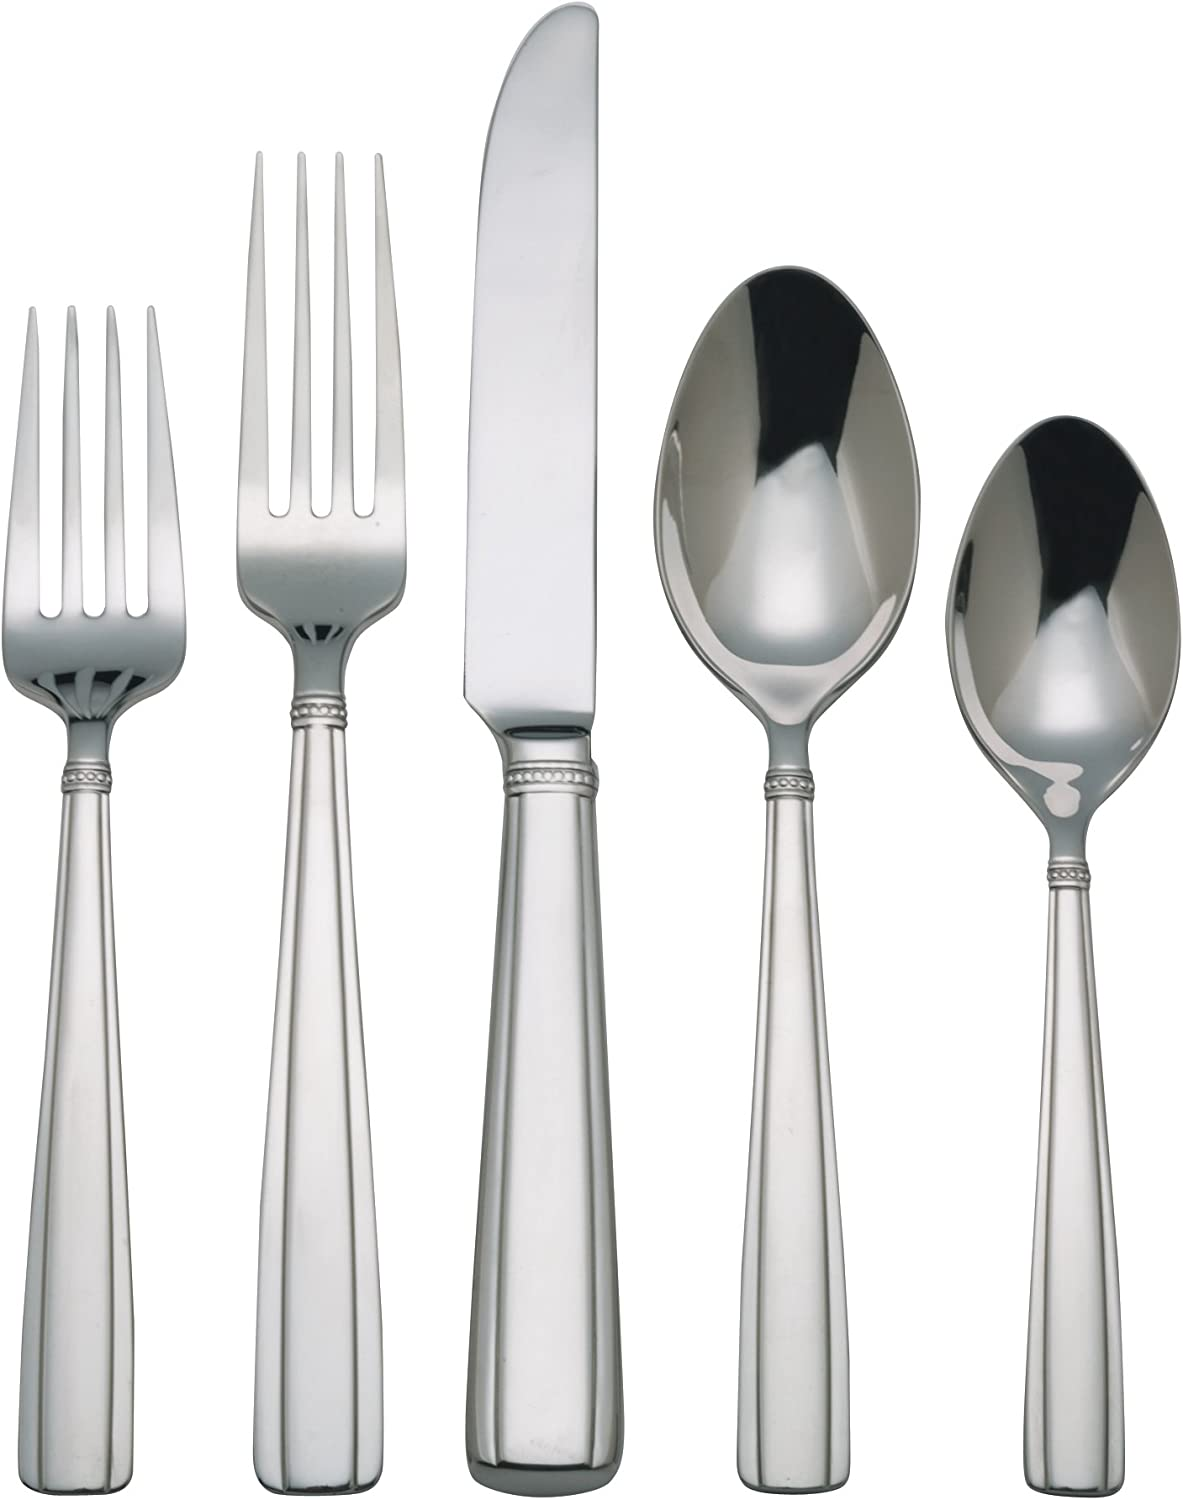 Reed /& Barton 04132008 65-Piece Andover Pearl Flatware Set by Reed /& Barton